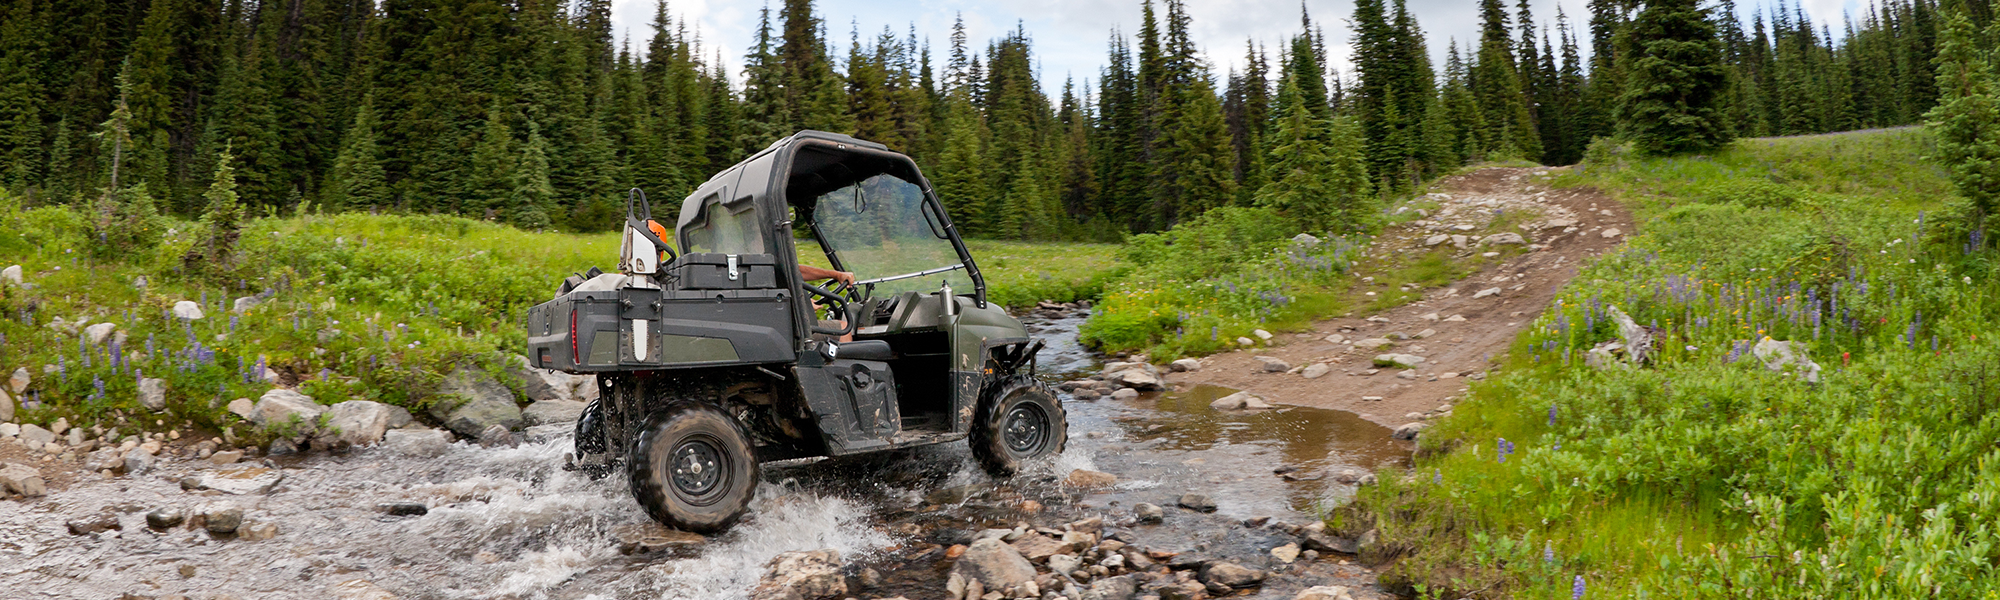 All Terrain Vehicle Riding on a Trail over a Stream